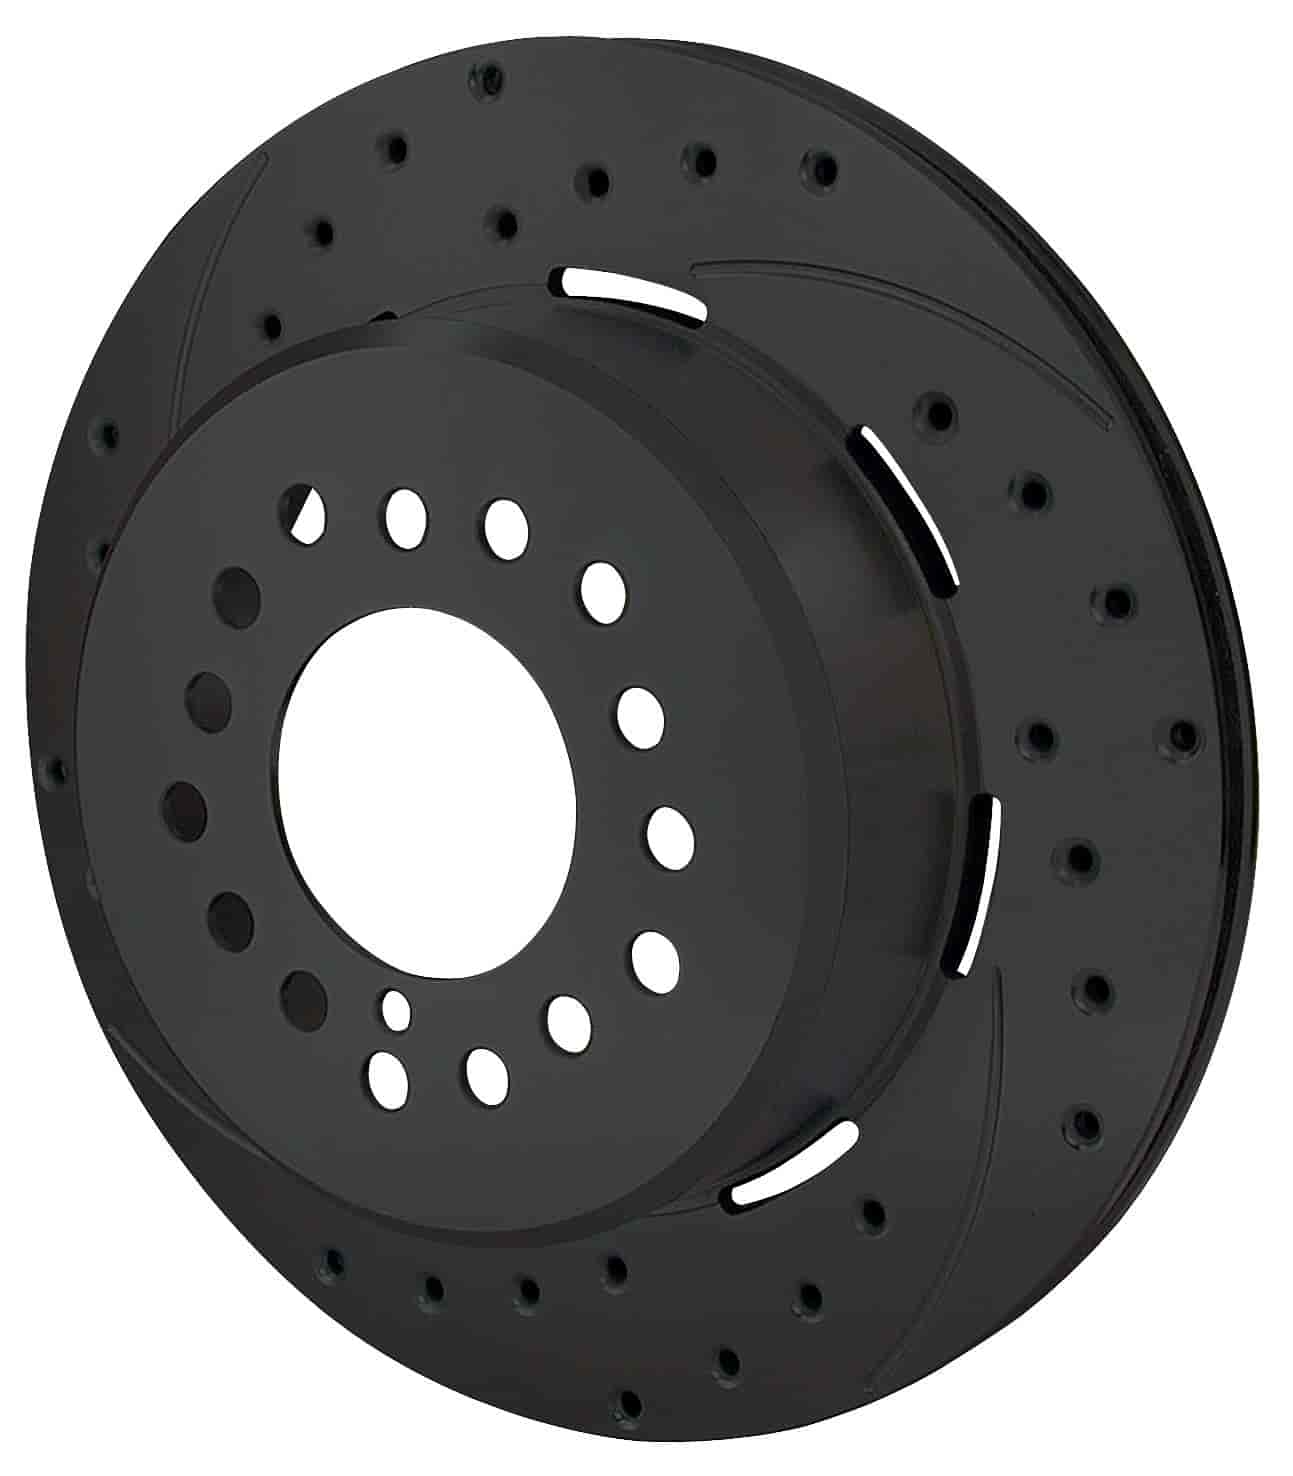 Wilwood 160-9812-BK - Wilwood Steel Rotors